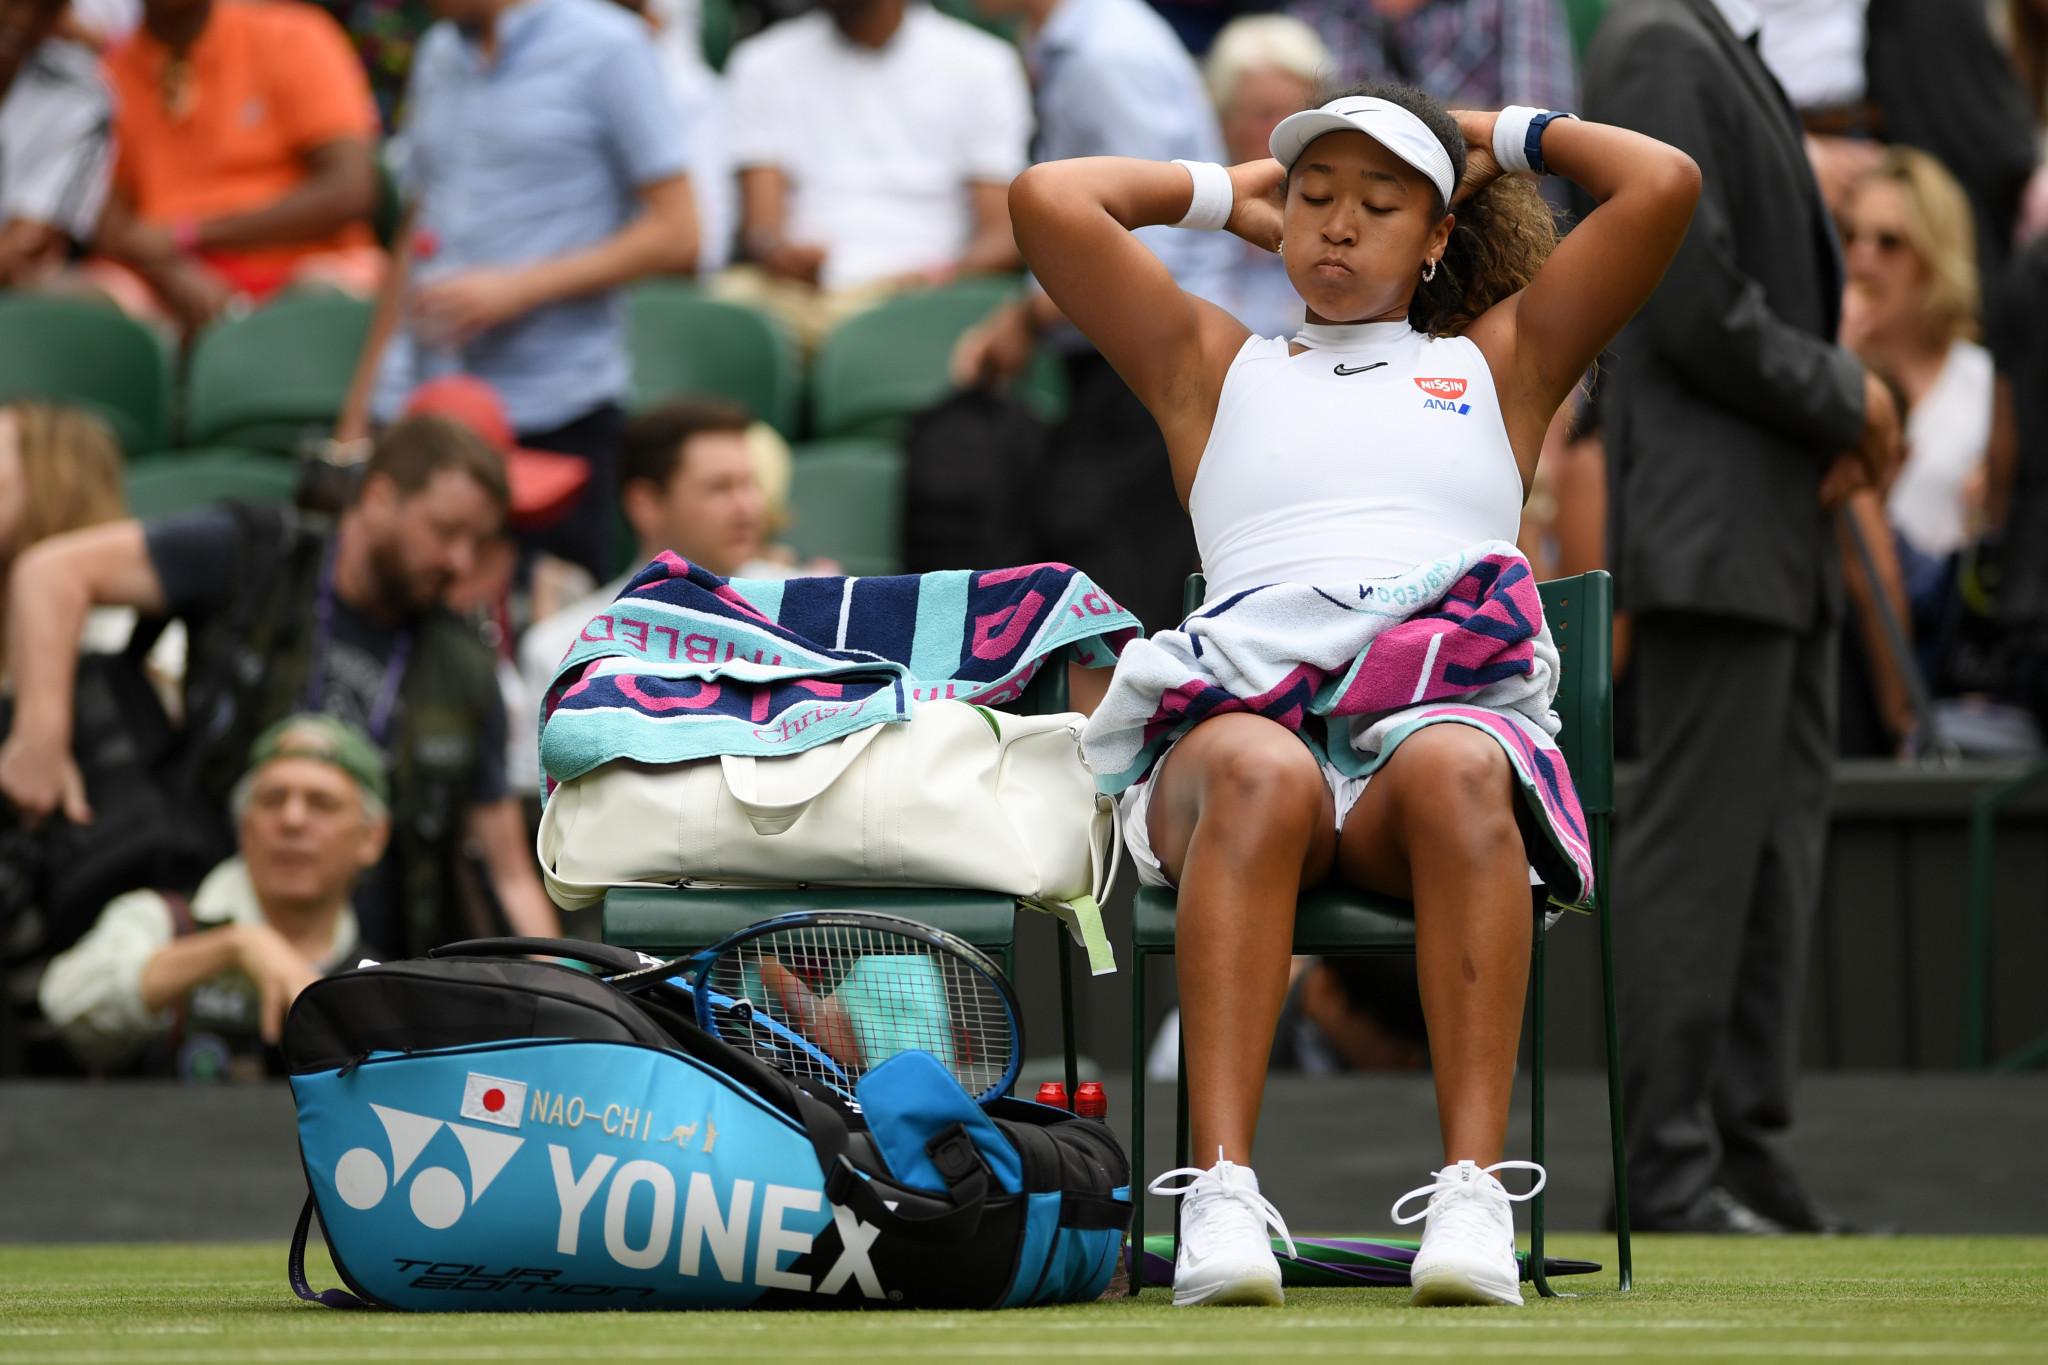 Osaka knocked out of Wimbledon in first round